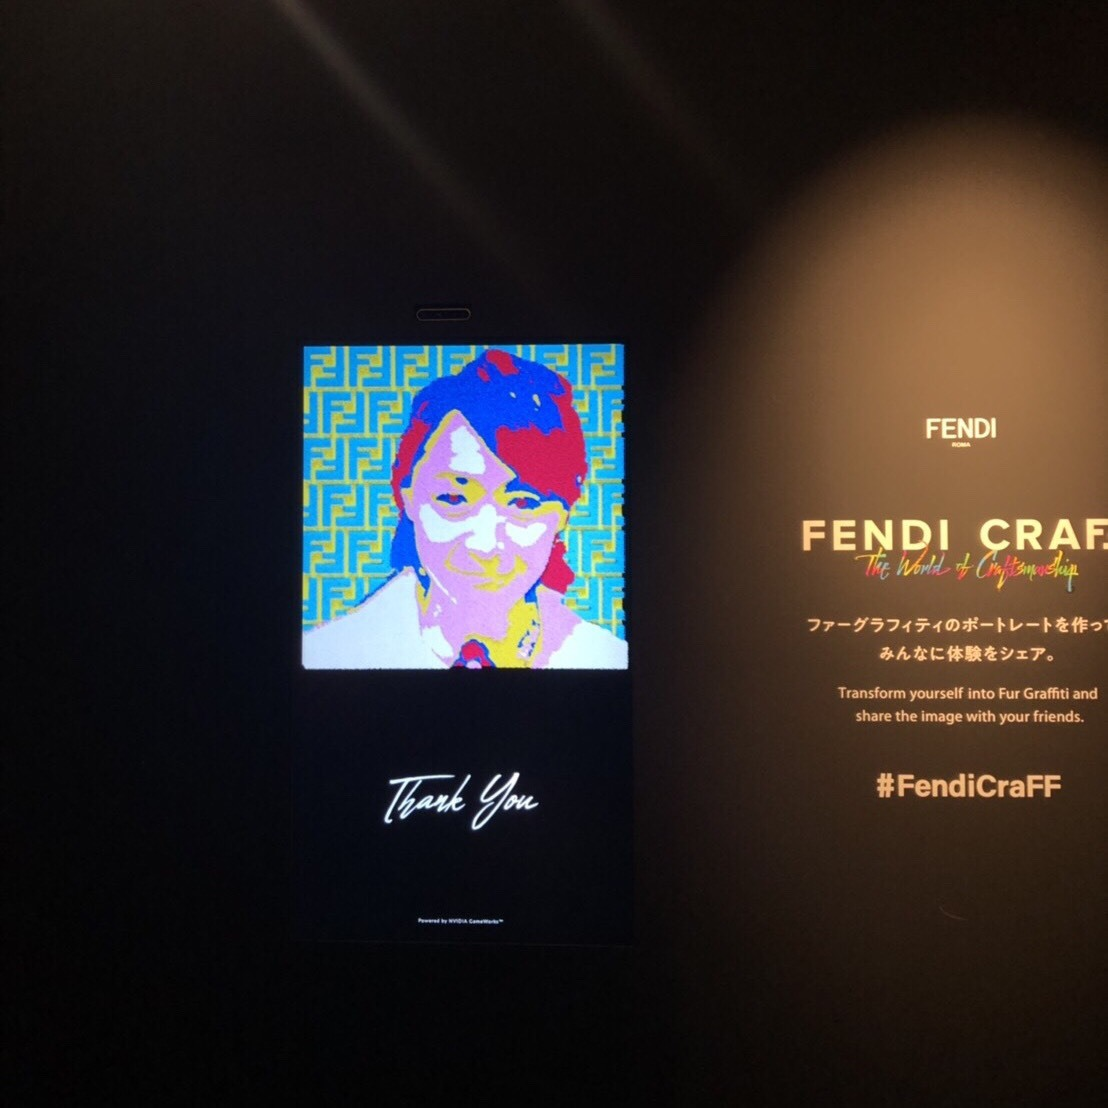 [富岡佳子private life] FENDI CraFF EXHIBITION_1_5